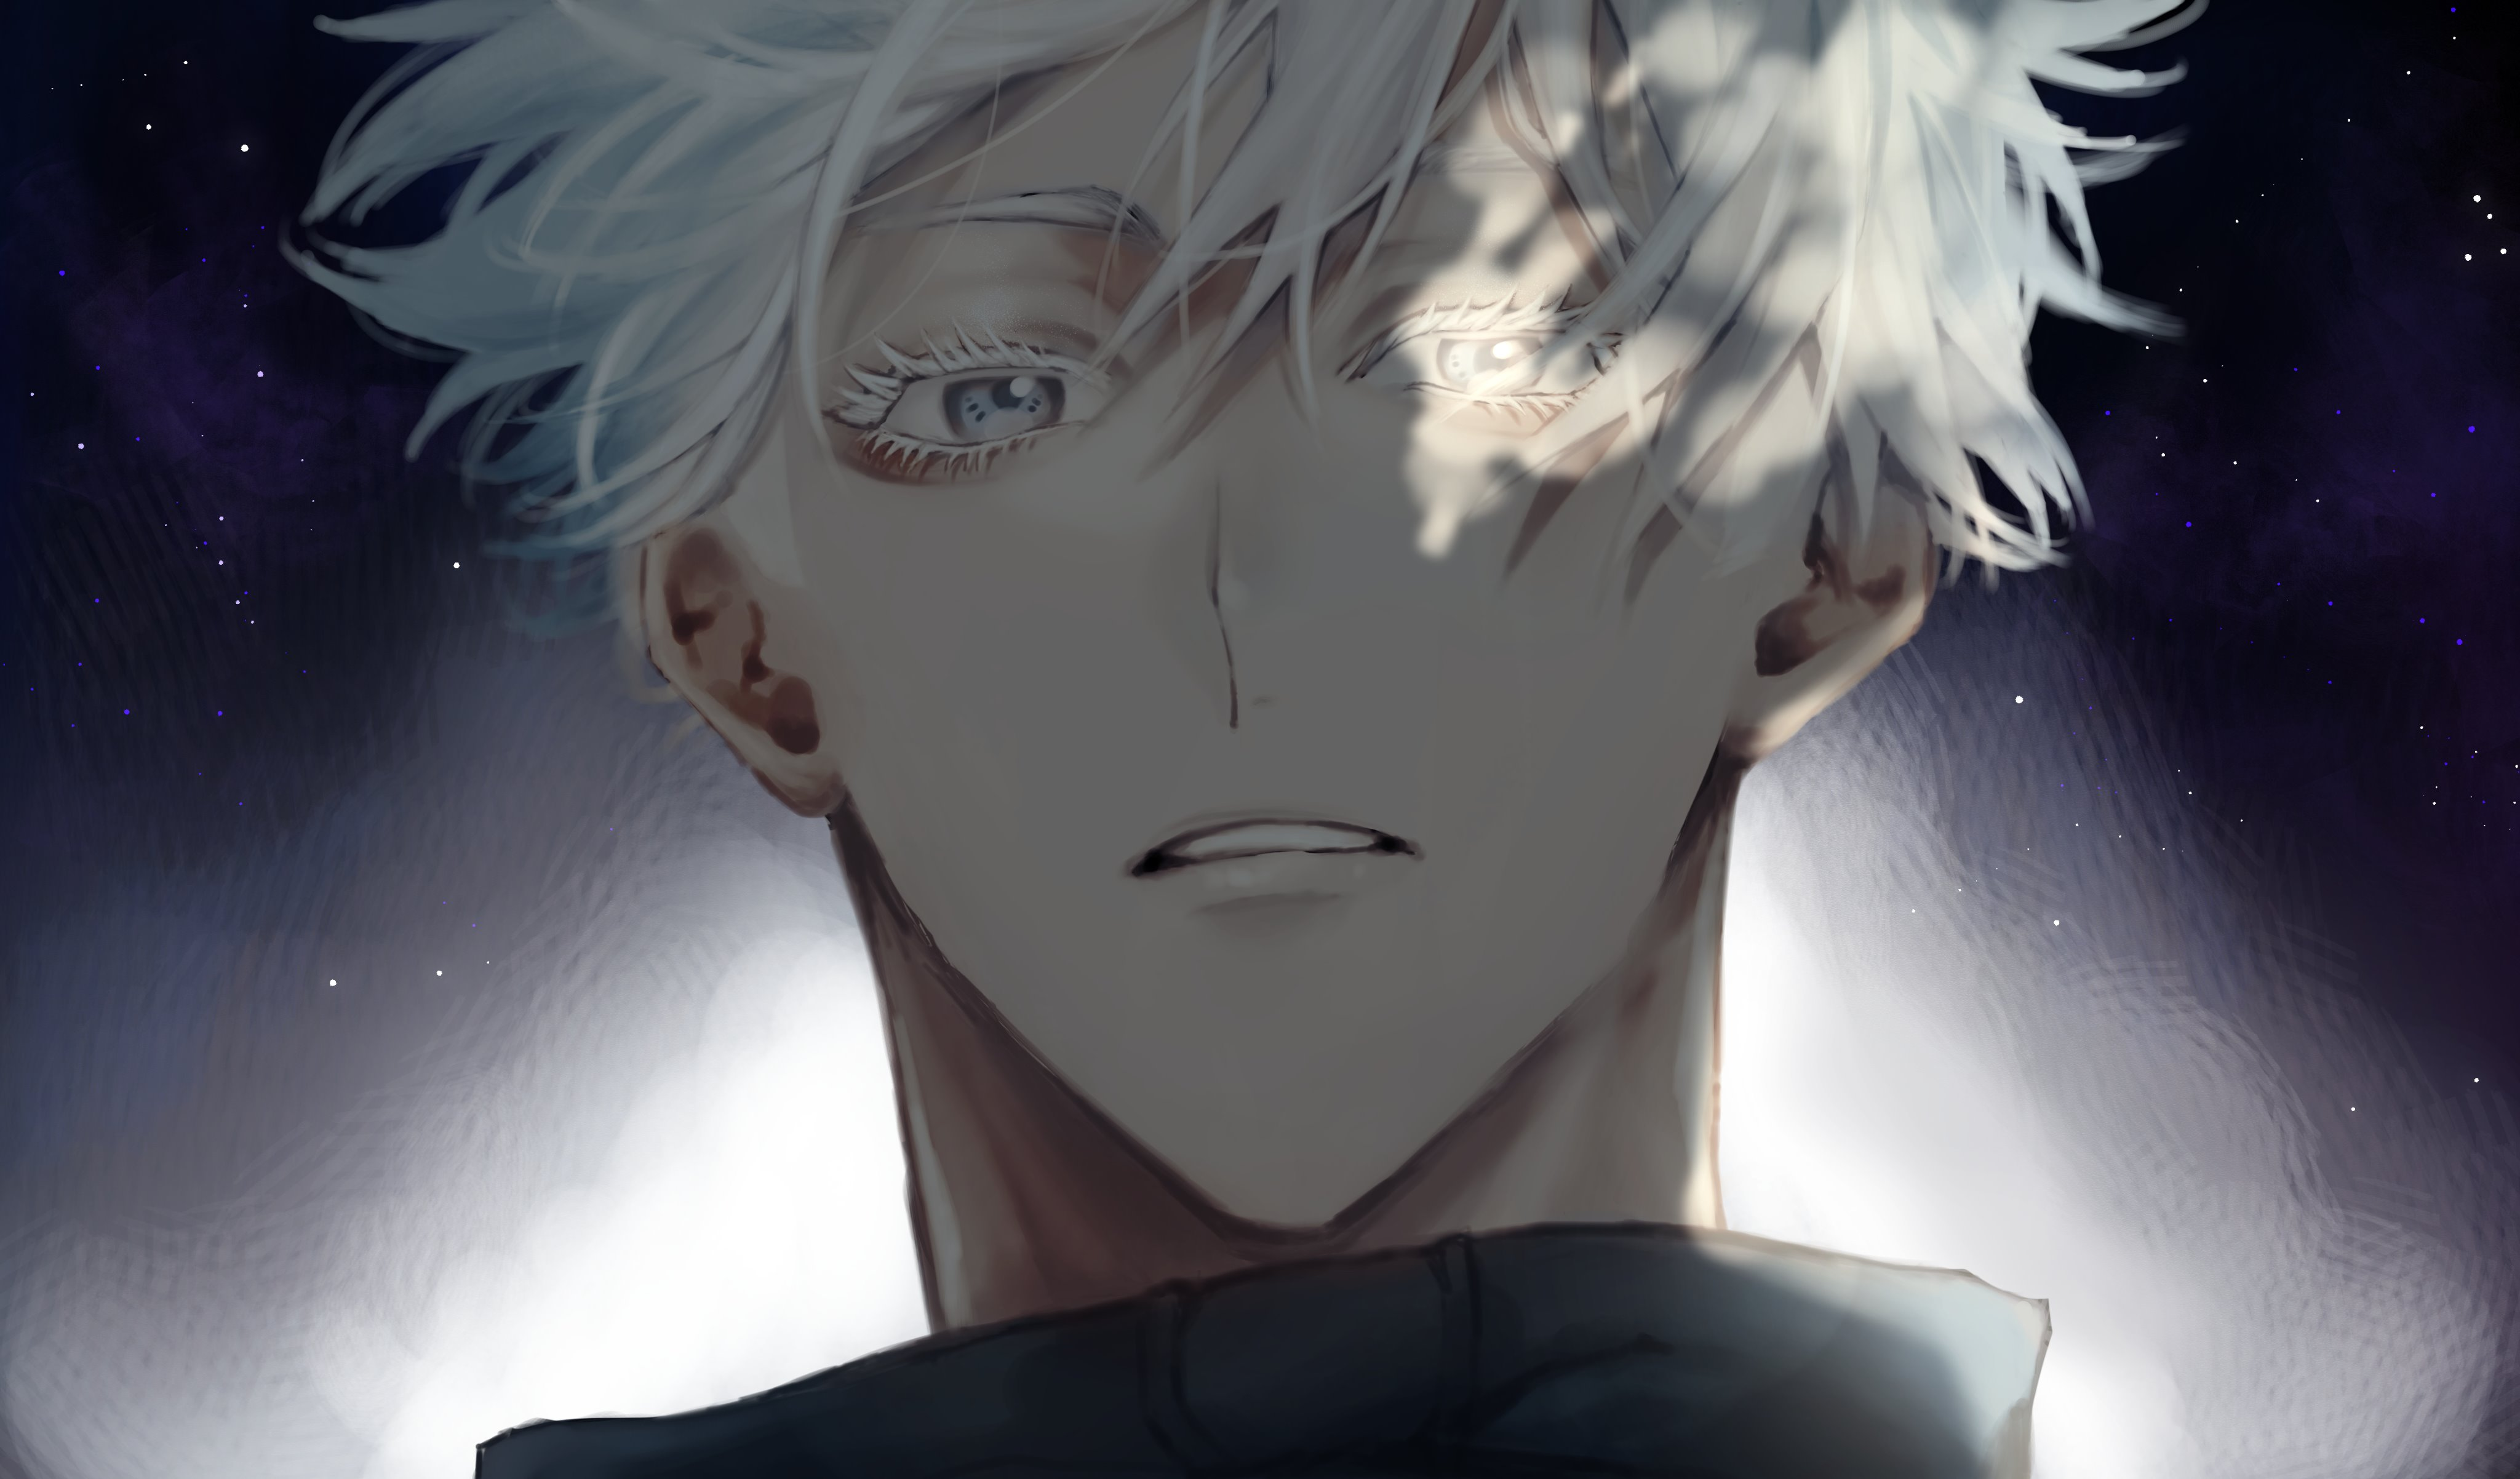 Click the image to visit the download page lost in paradise jujutsu kaisen wallpaper | jujutsu kaisen anime background | download jujutsu kaisen ending. Jujutsu Kaisen 4k Ultra HD Wallpaper | Background Image ...